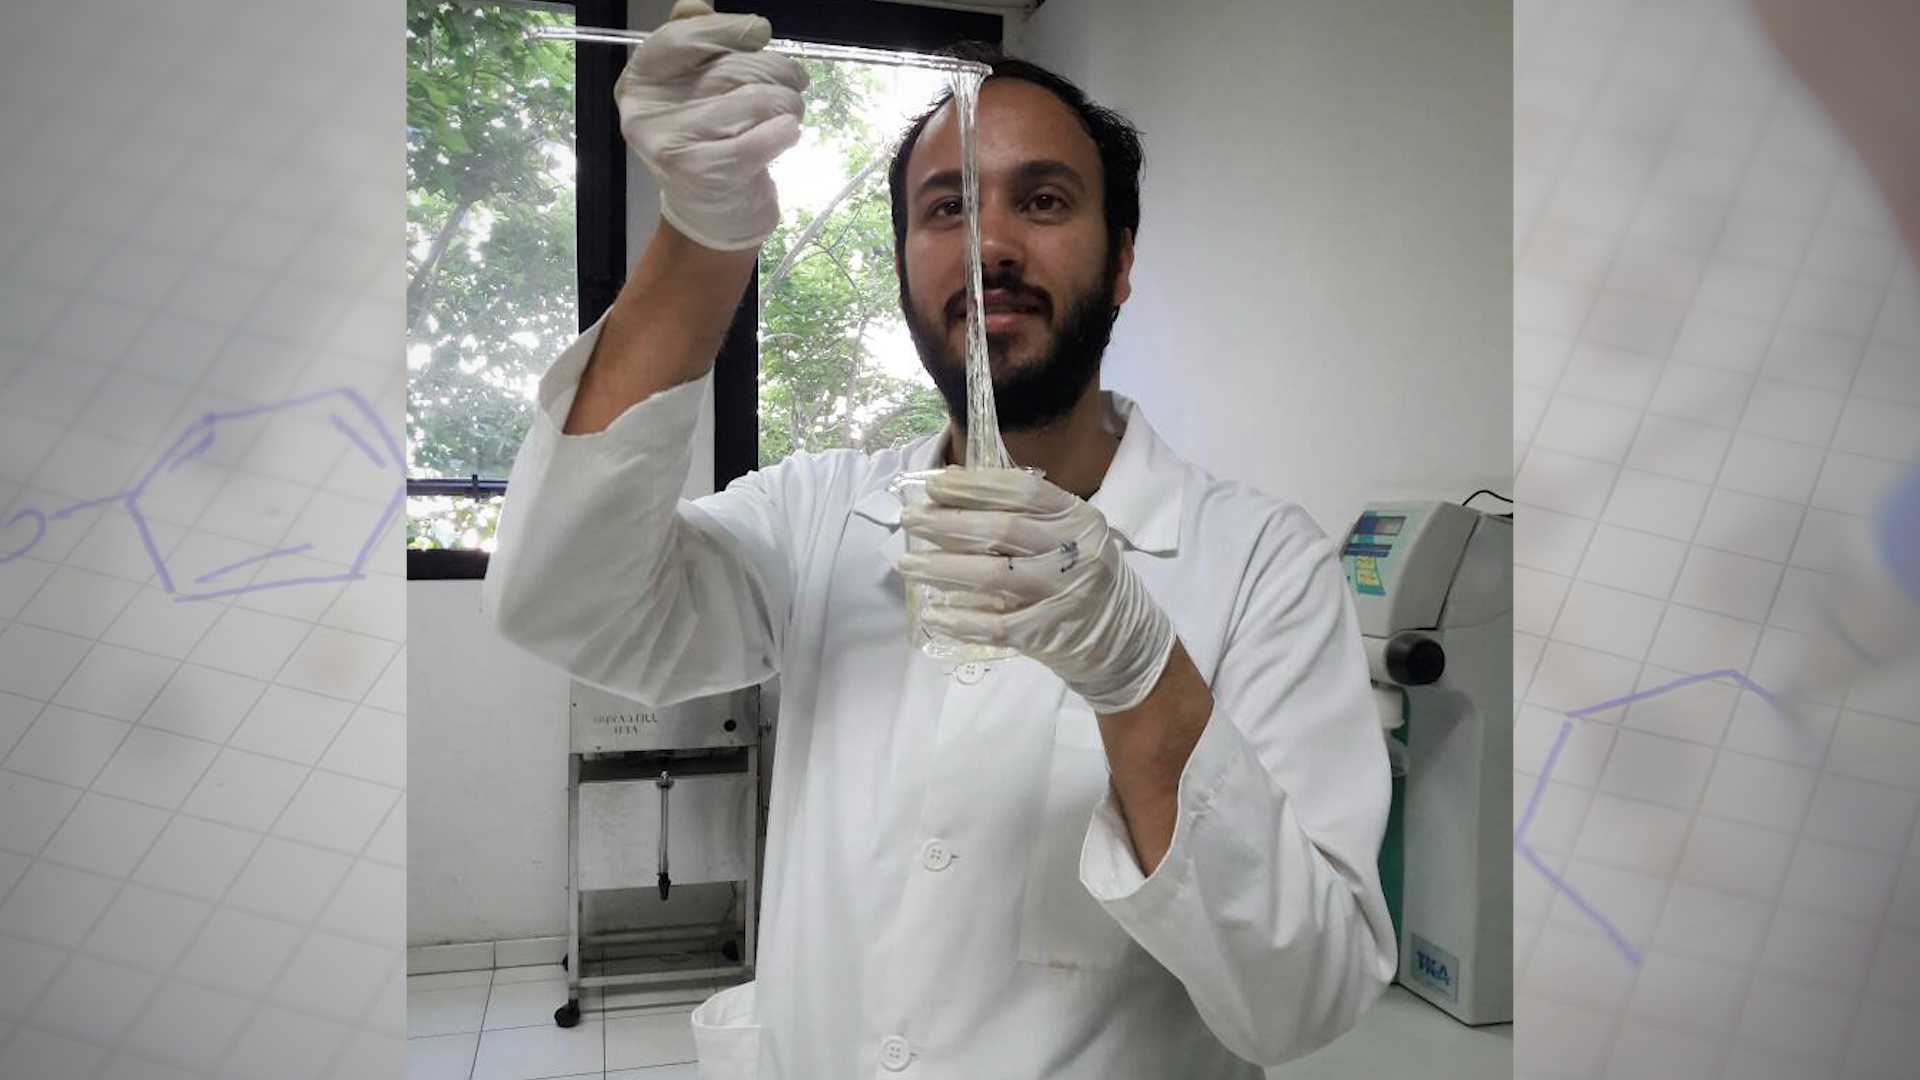 Man in lab coat holds sticks above a vile that has long clear sticky substance hanging from the stick into the vile